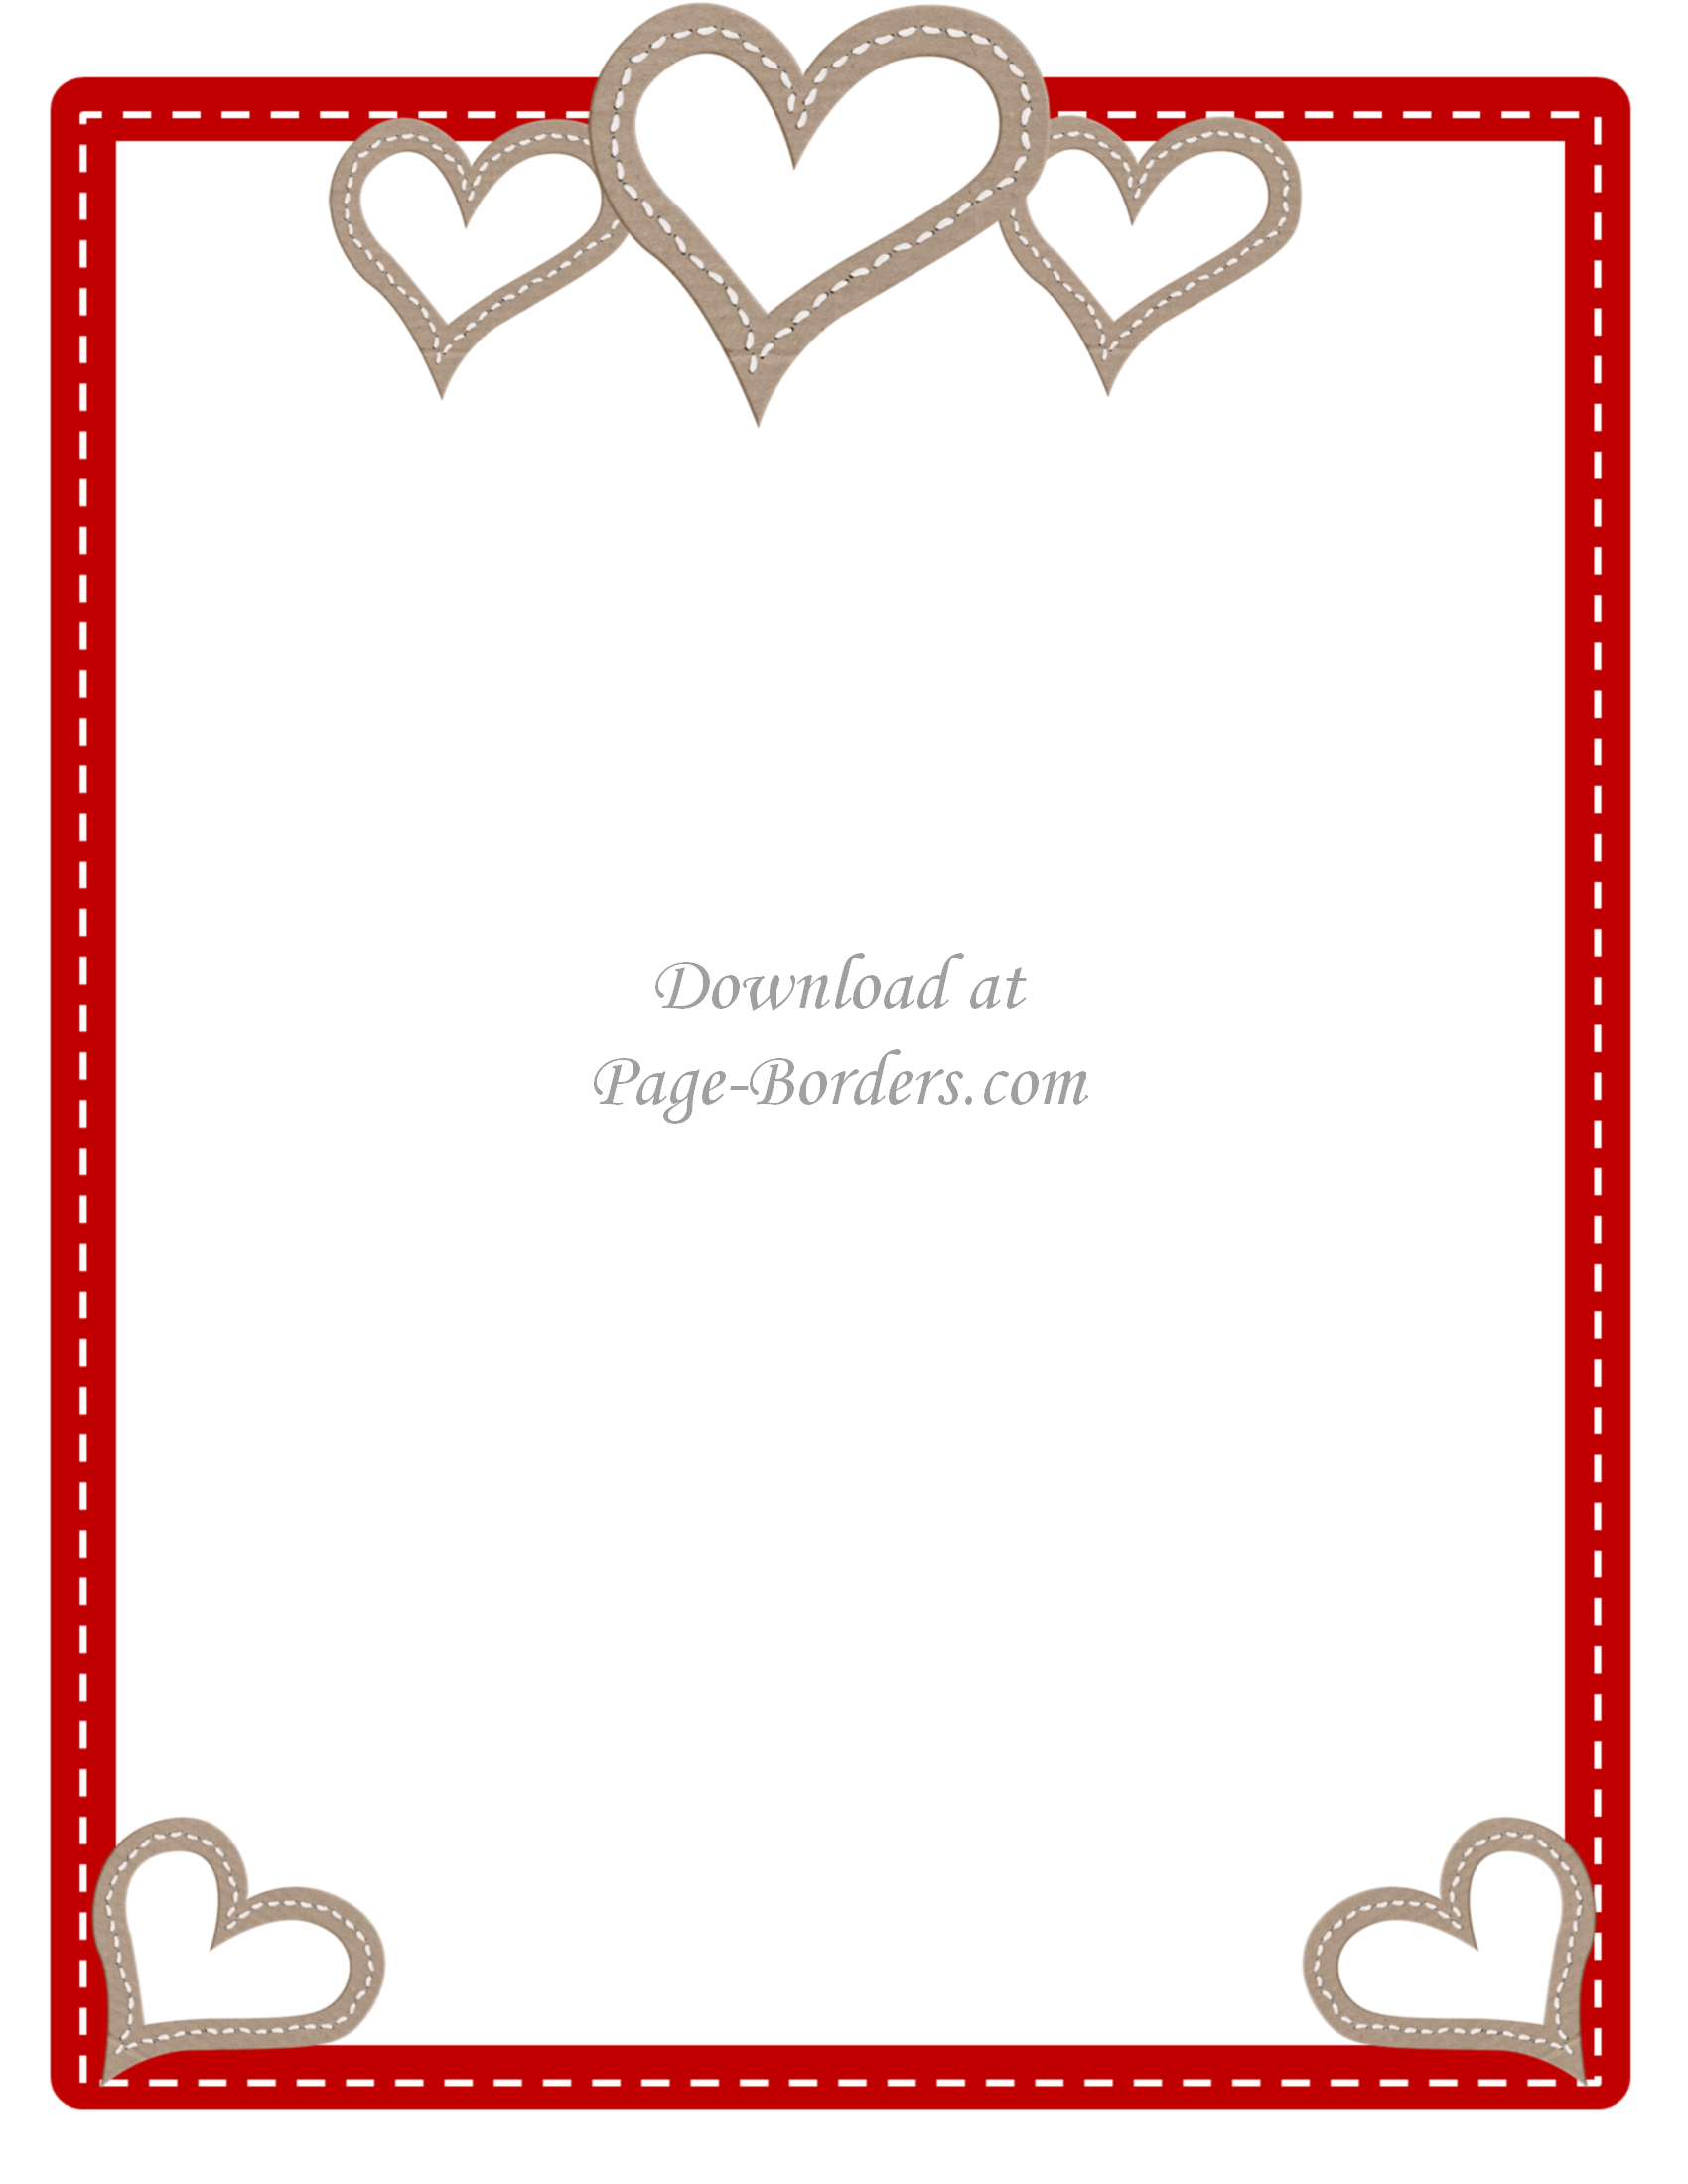 Heart Page Border Png - Free Printable Heart Border   Customize online or download as is